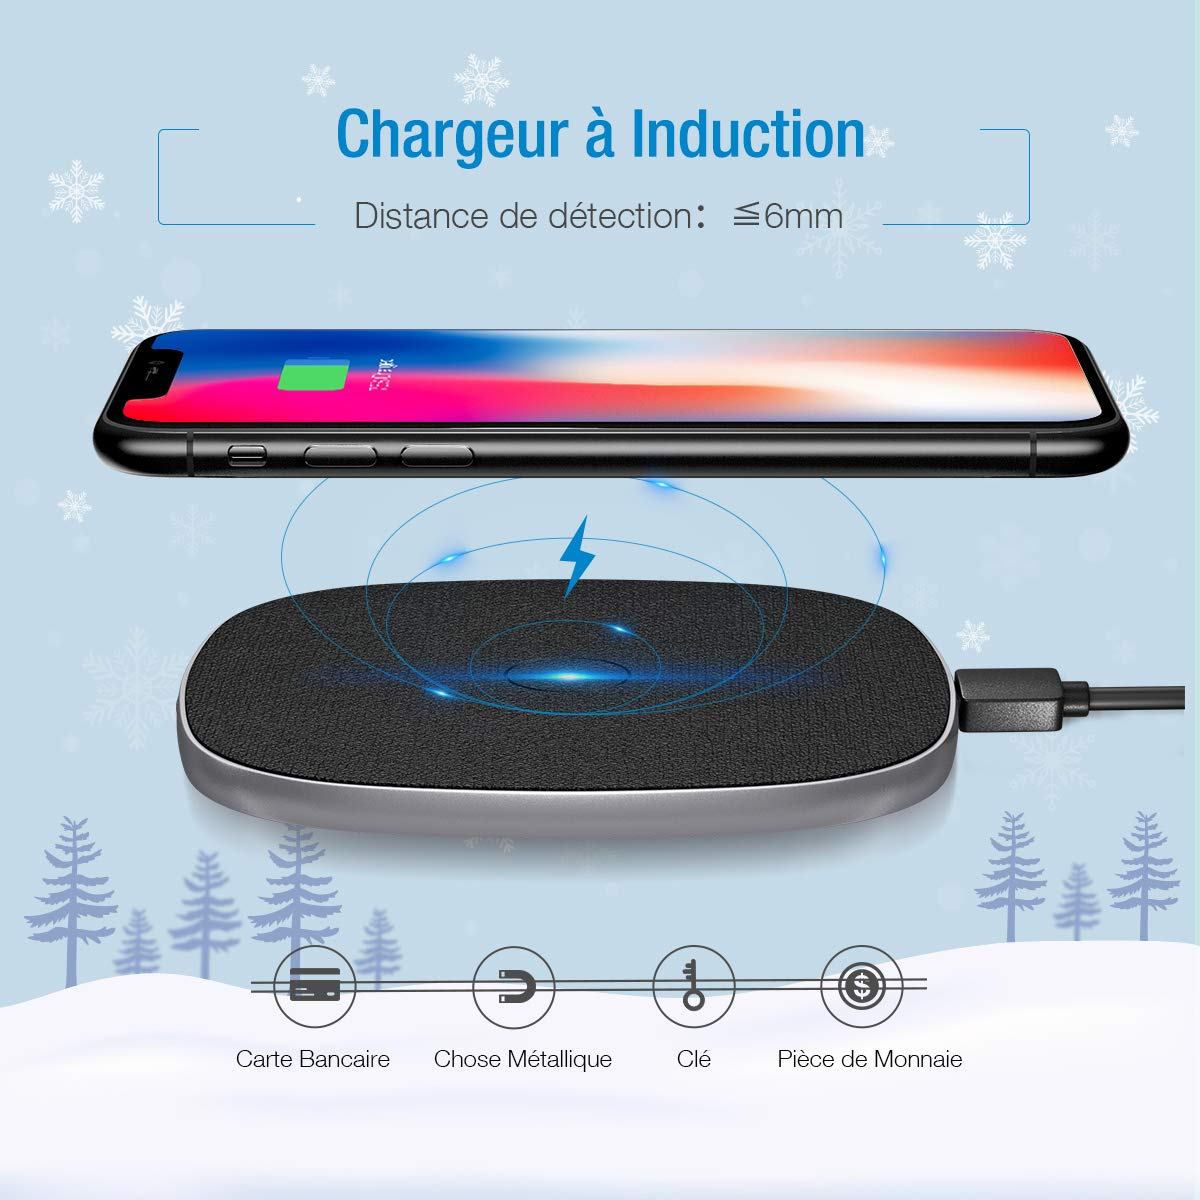 POWERADD Chargeur Sans Fil à Induction 7.5W Charge Rapide pour iPhone XS/XS Max/XR/X/iPhone 8/8 Plus,10W Charge Wireless pour Galaxy S9 / S9+ / S8 / S8+ / S7 et autres appareils compatibles Qi